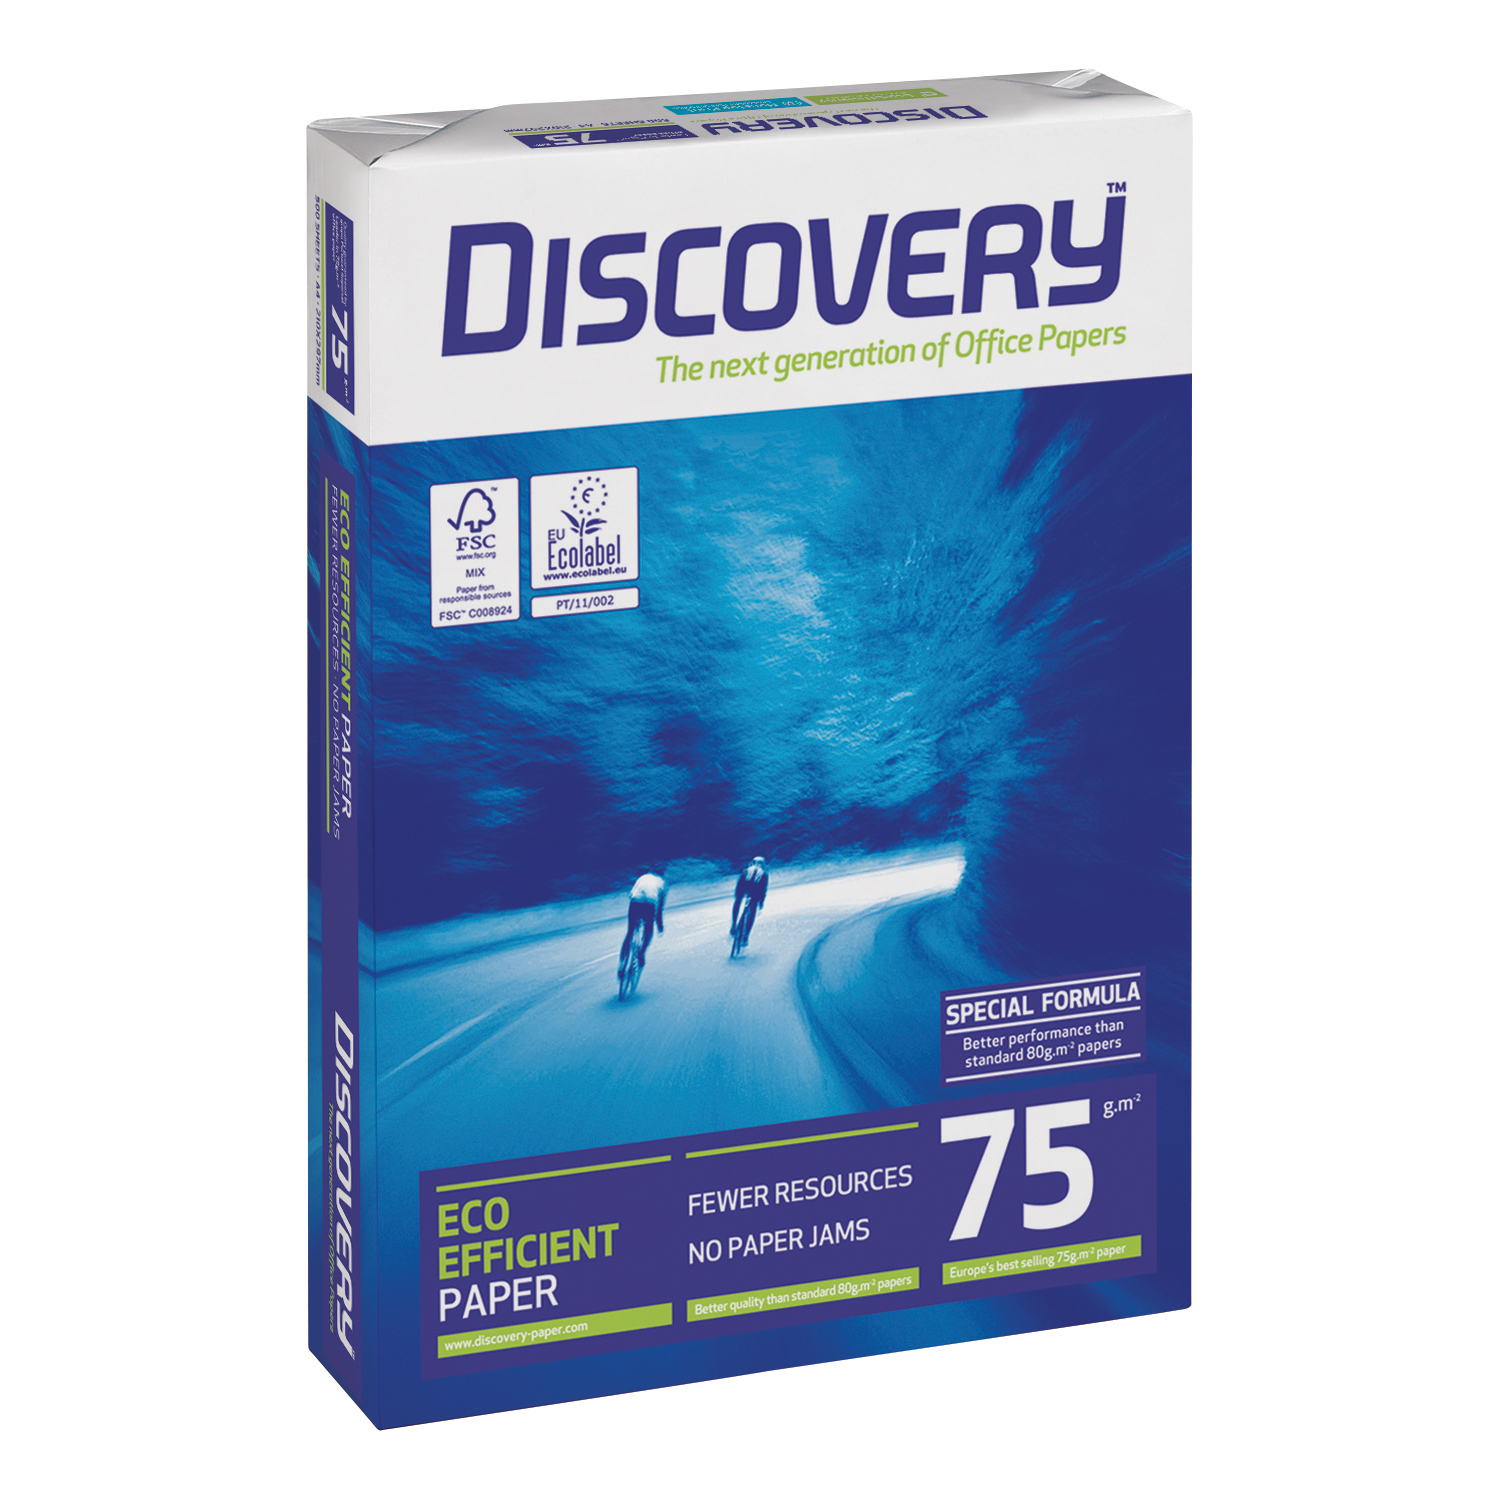 Discovery Everyday Paper FSC 5x Ream-wrapped Pks 75gsm A4 White Ref DIS0750073 [2500 Sheets]